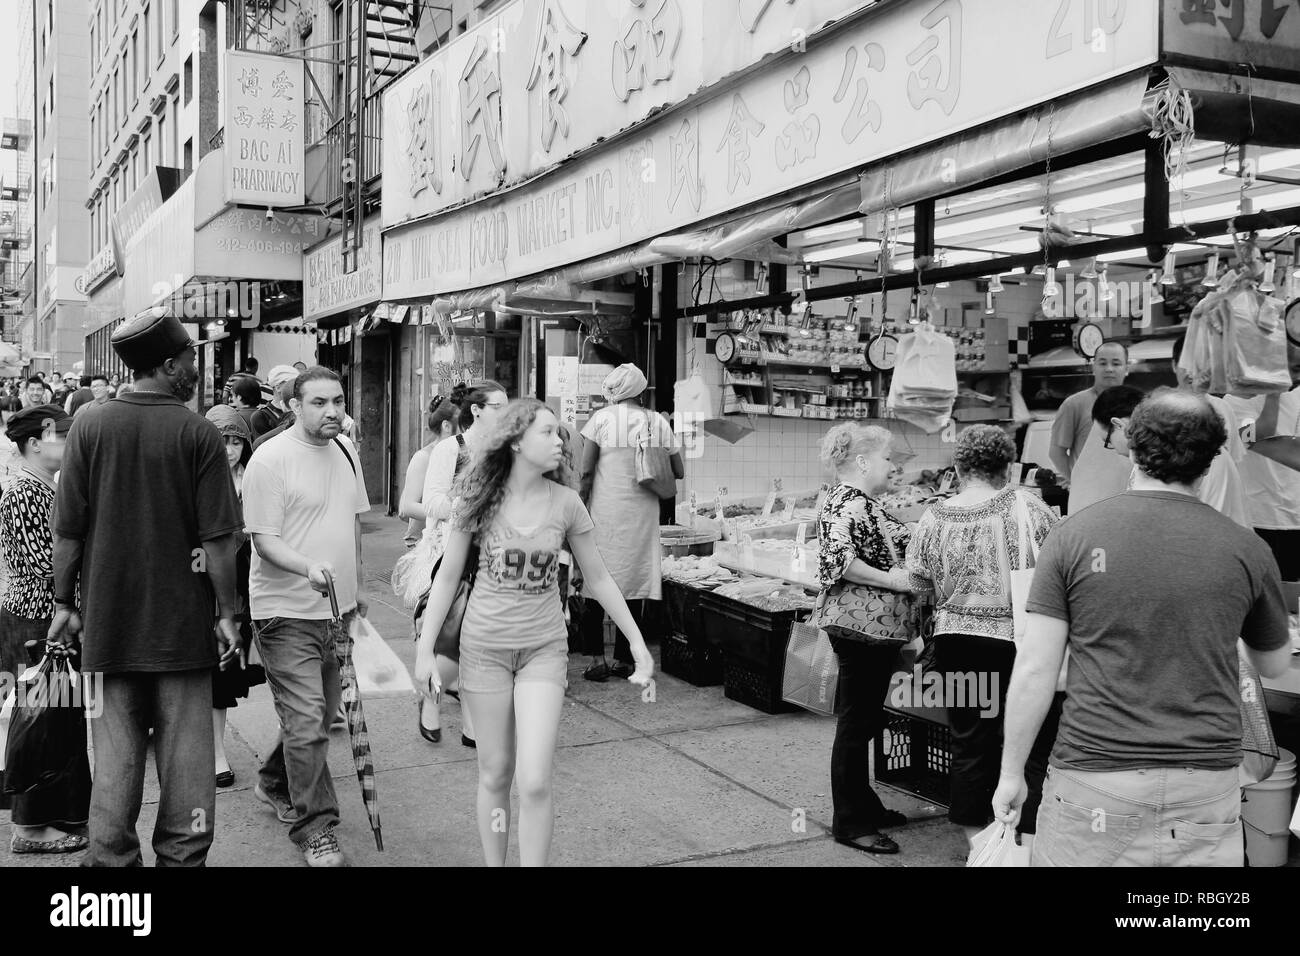 NEW YORK, USA - JULY 1, 2013: People shop in Chinatown in New York. NYC Chinatown has an estimated population of 100,000 people and is one of oldest C - Stock Image